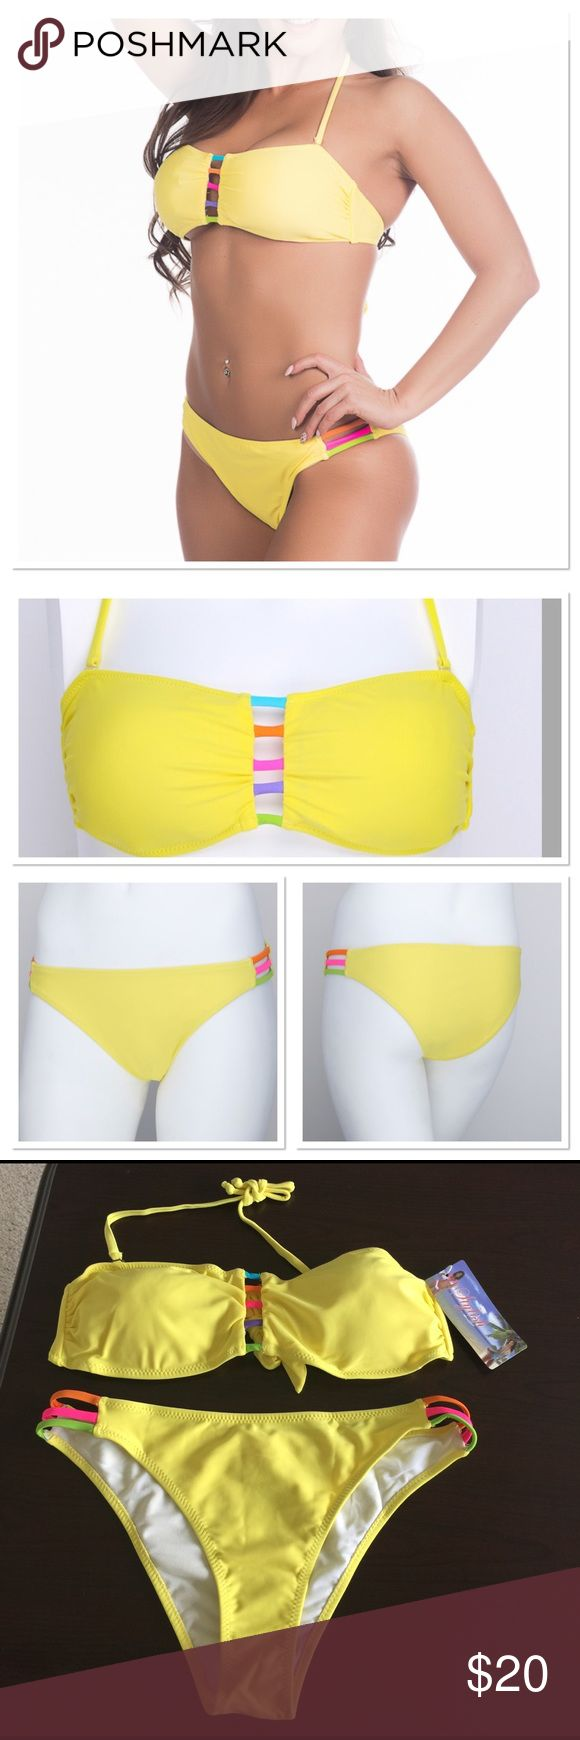 NWT gorgeous yellow bikini NWT beautiful yellow bikini with colorful front keyhole stripes in turquoise, orange, hot pink, purple and lime green. Bottom has cut out on sides with orange, hot pink and lime green. Top strap on bikini is removable so you can make it strapless. Top is medium, bottom is large. Stylish Swim Bikinis